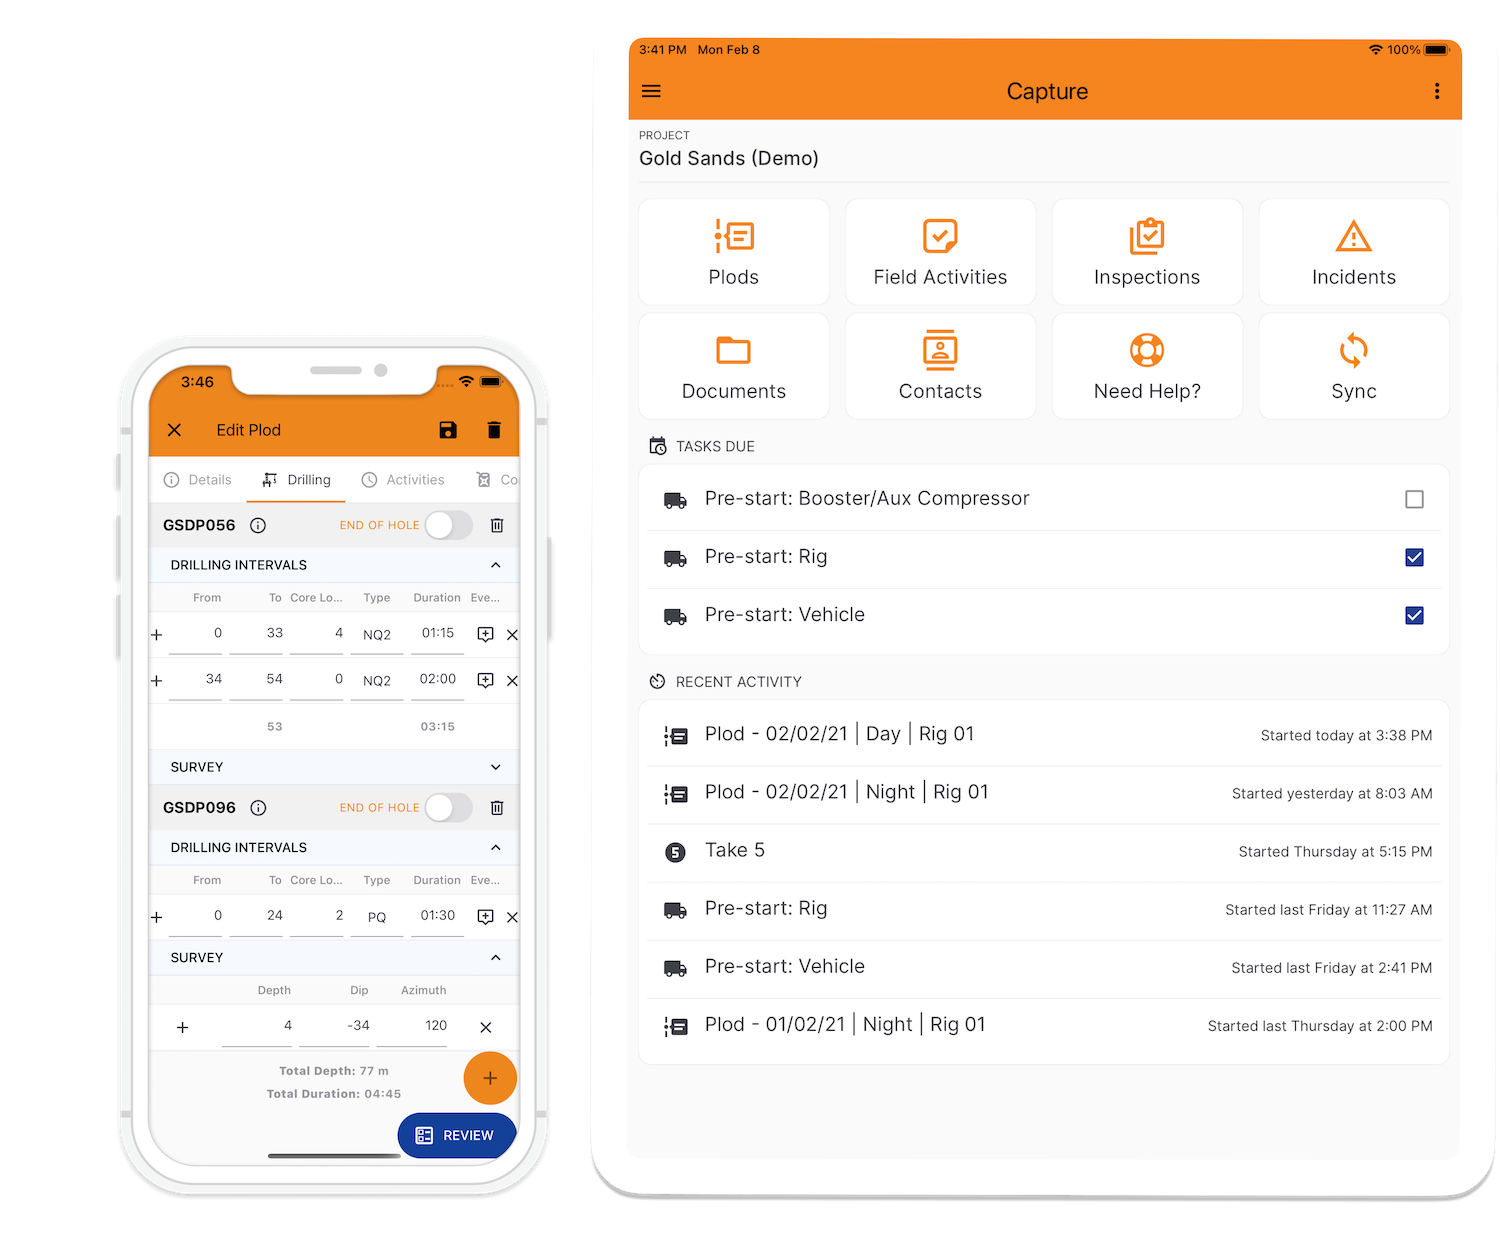 Coreplan Mobile and Tablet app for mining exploration and drilling to capture drill plods, inspections, incidents and other safety data